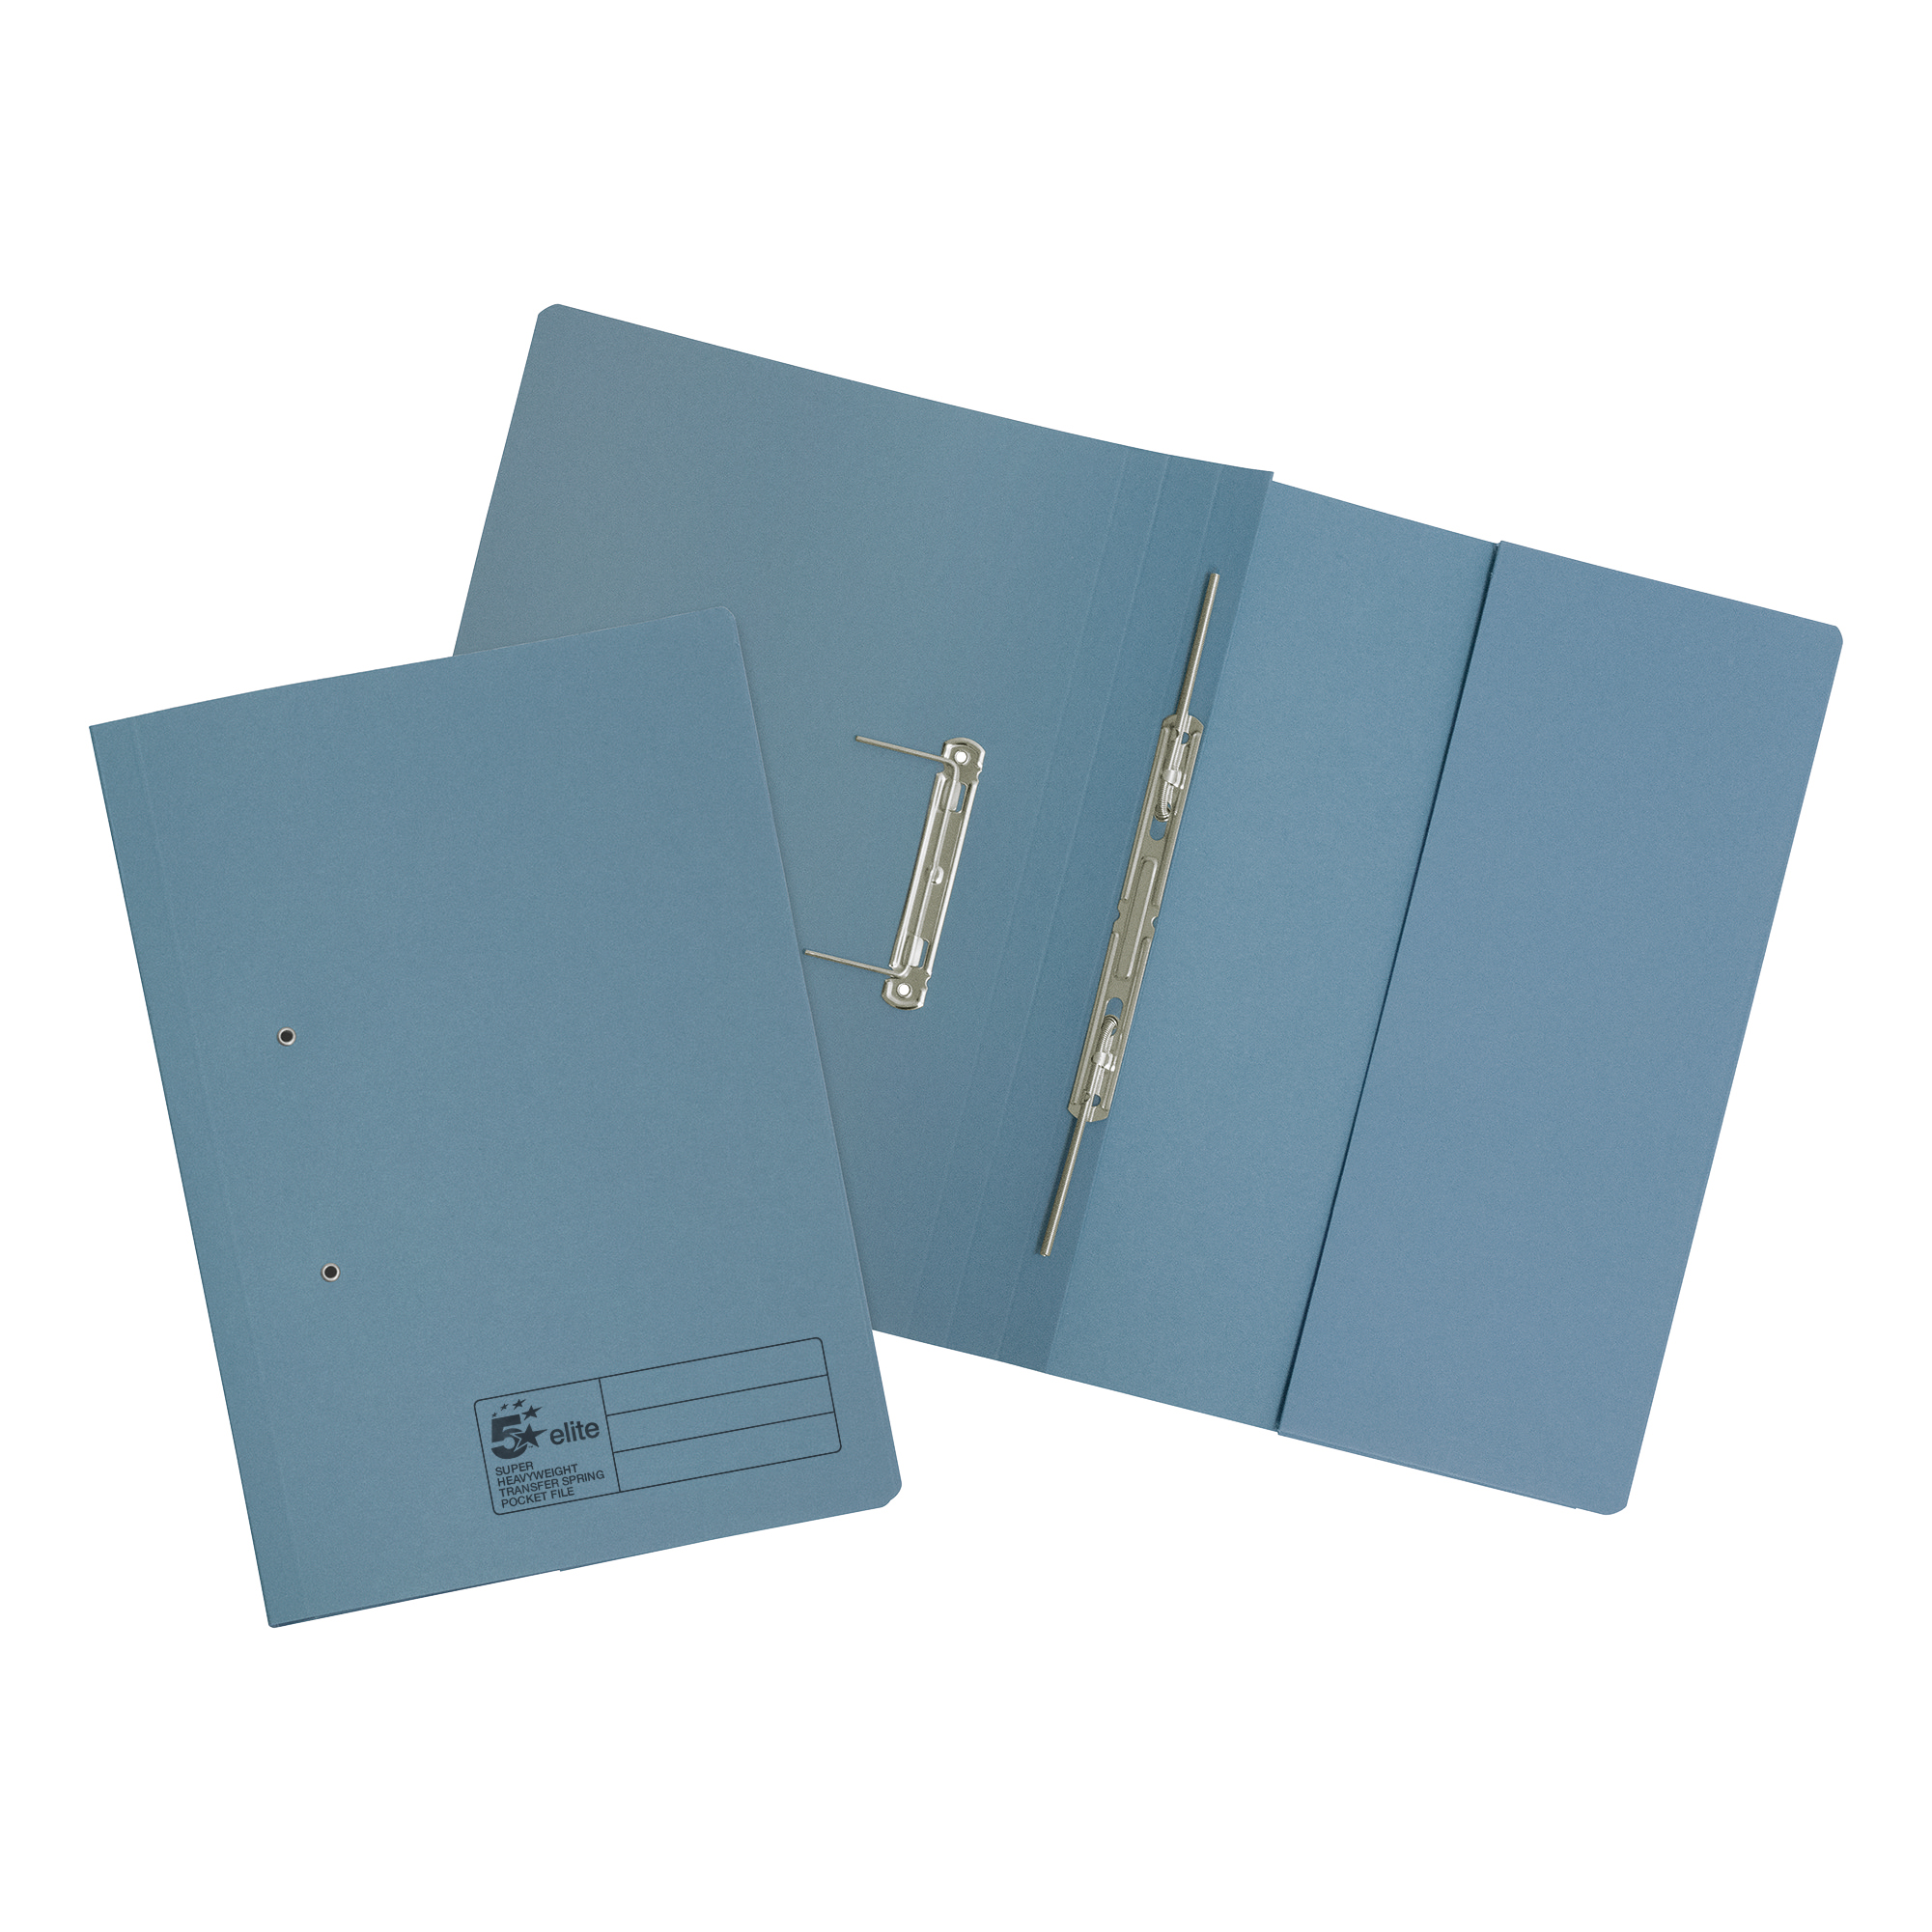 5 Star Elite Transfer Spring Pocket File Super Heavyweight 380gsm Foolscap Blue [Pack 25]